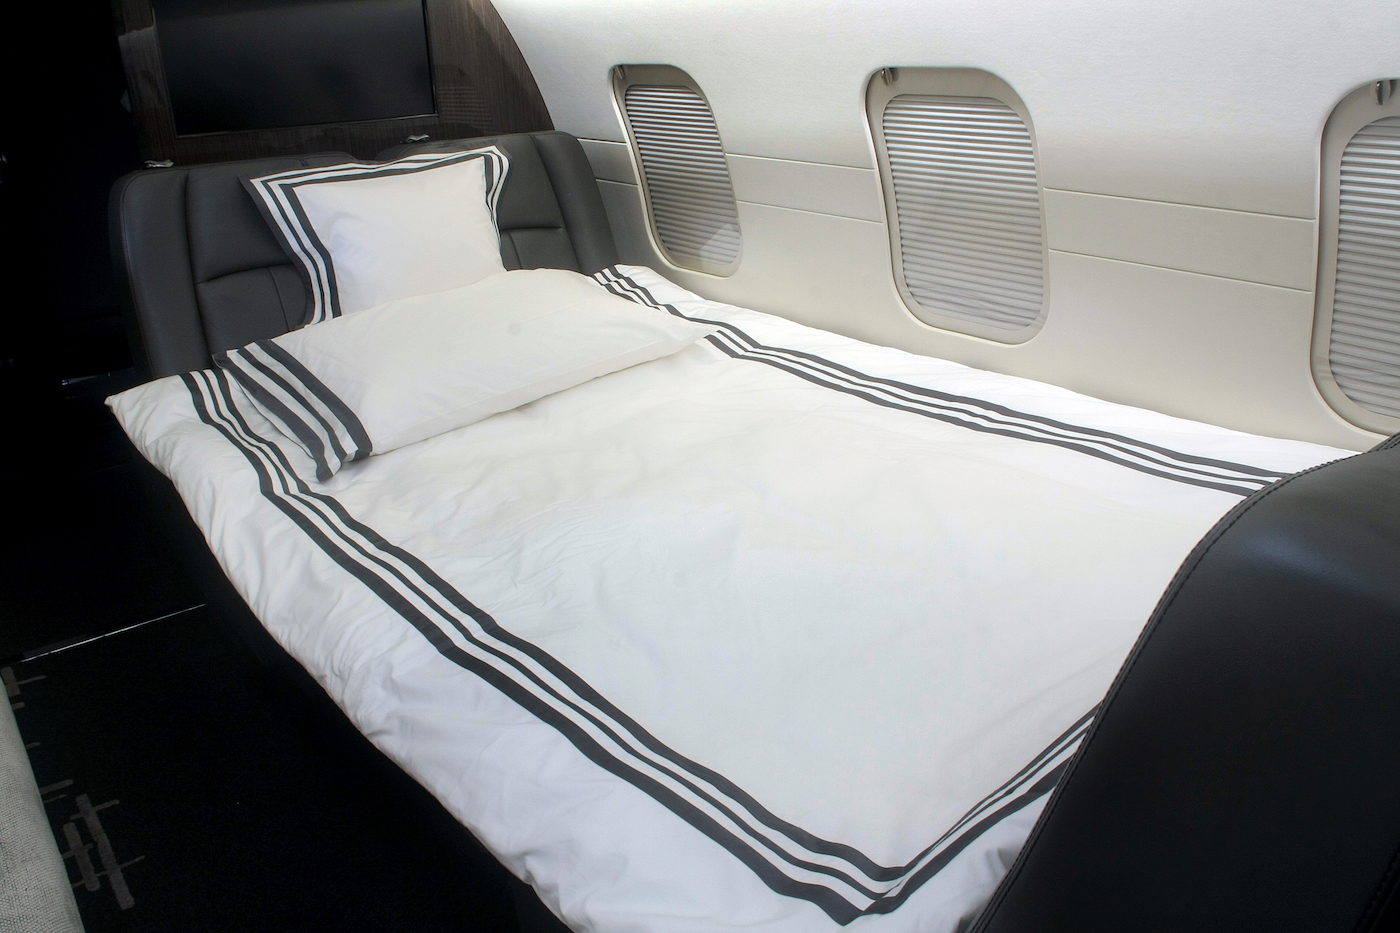 corporate-jet-bed